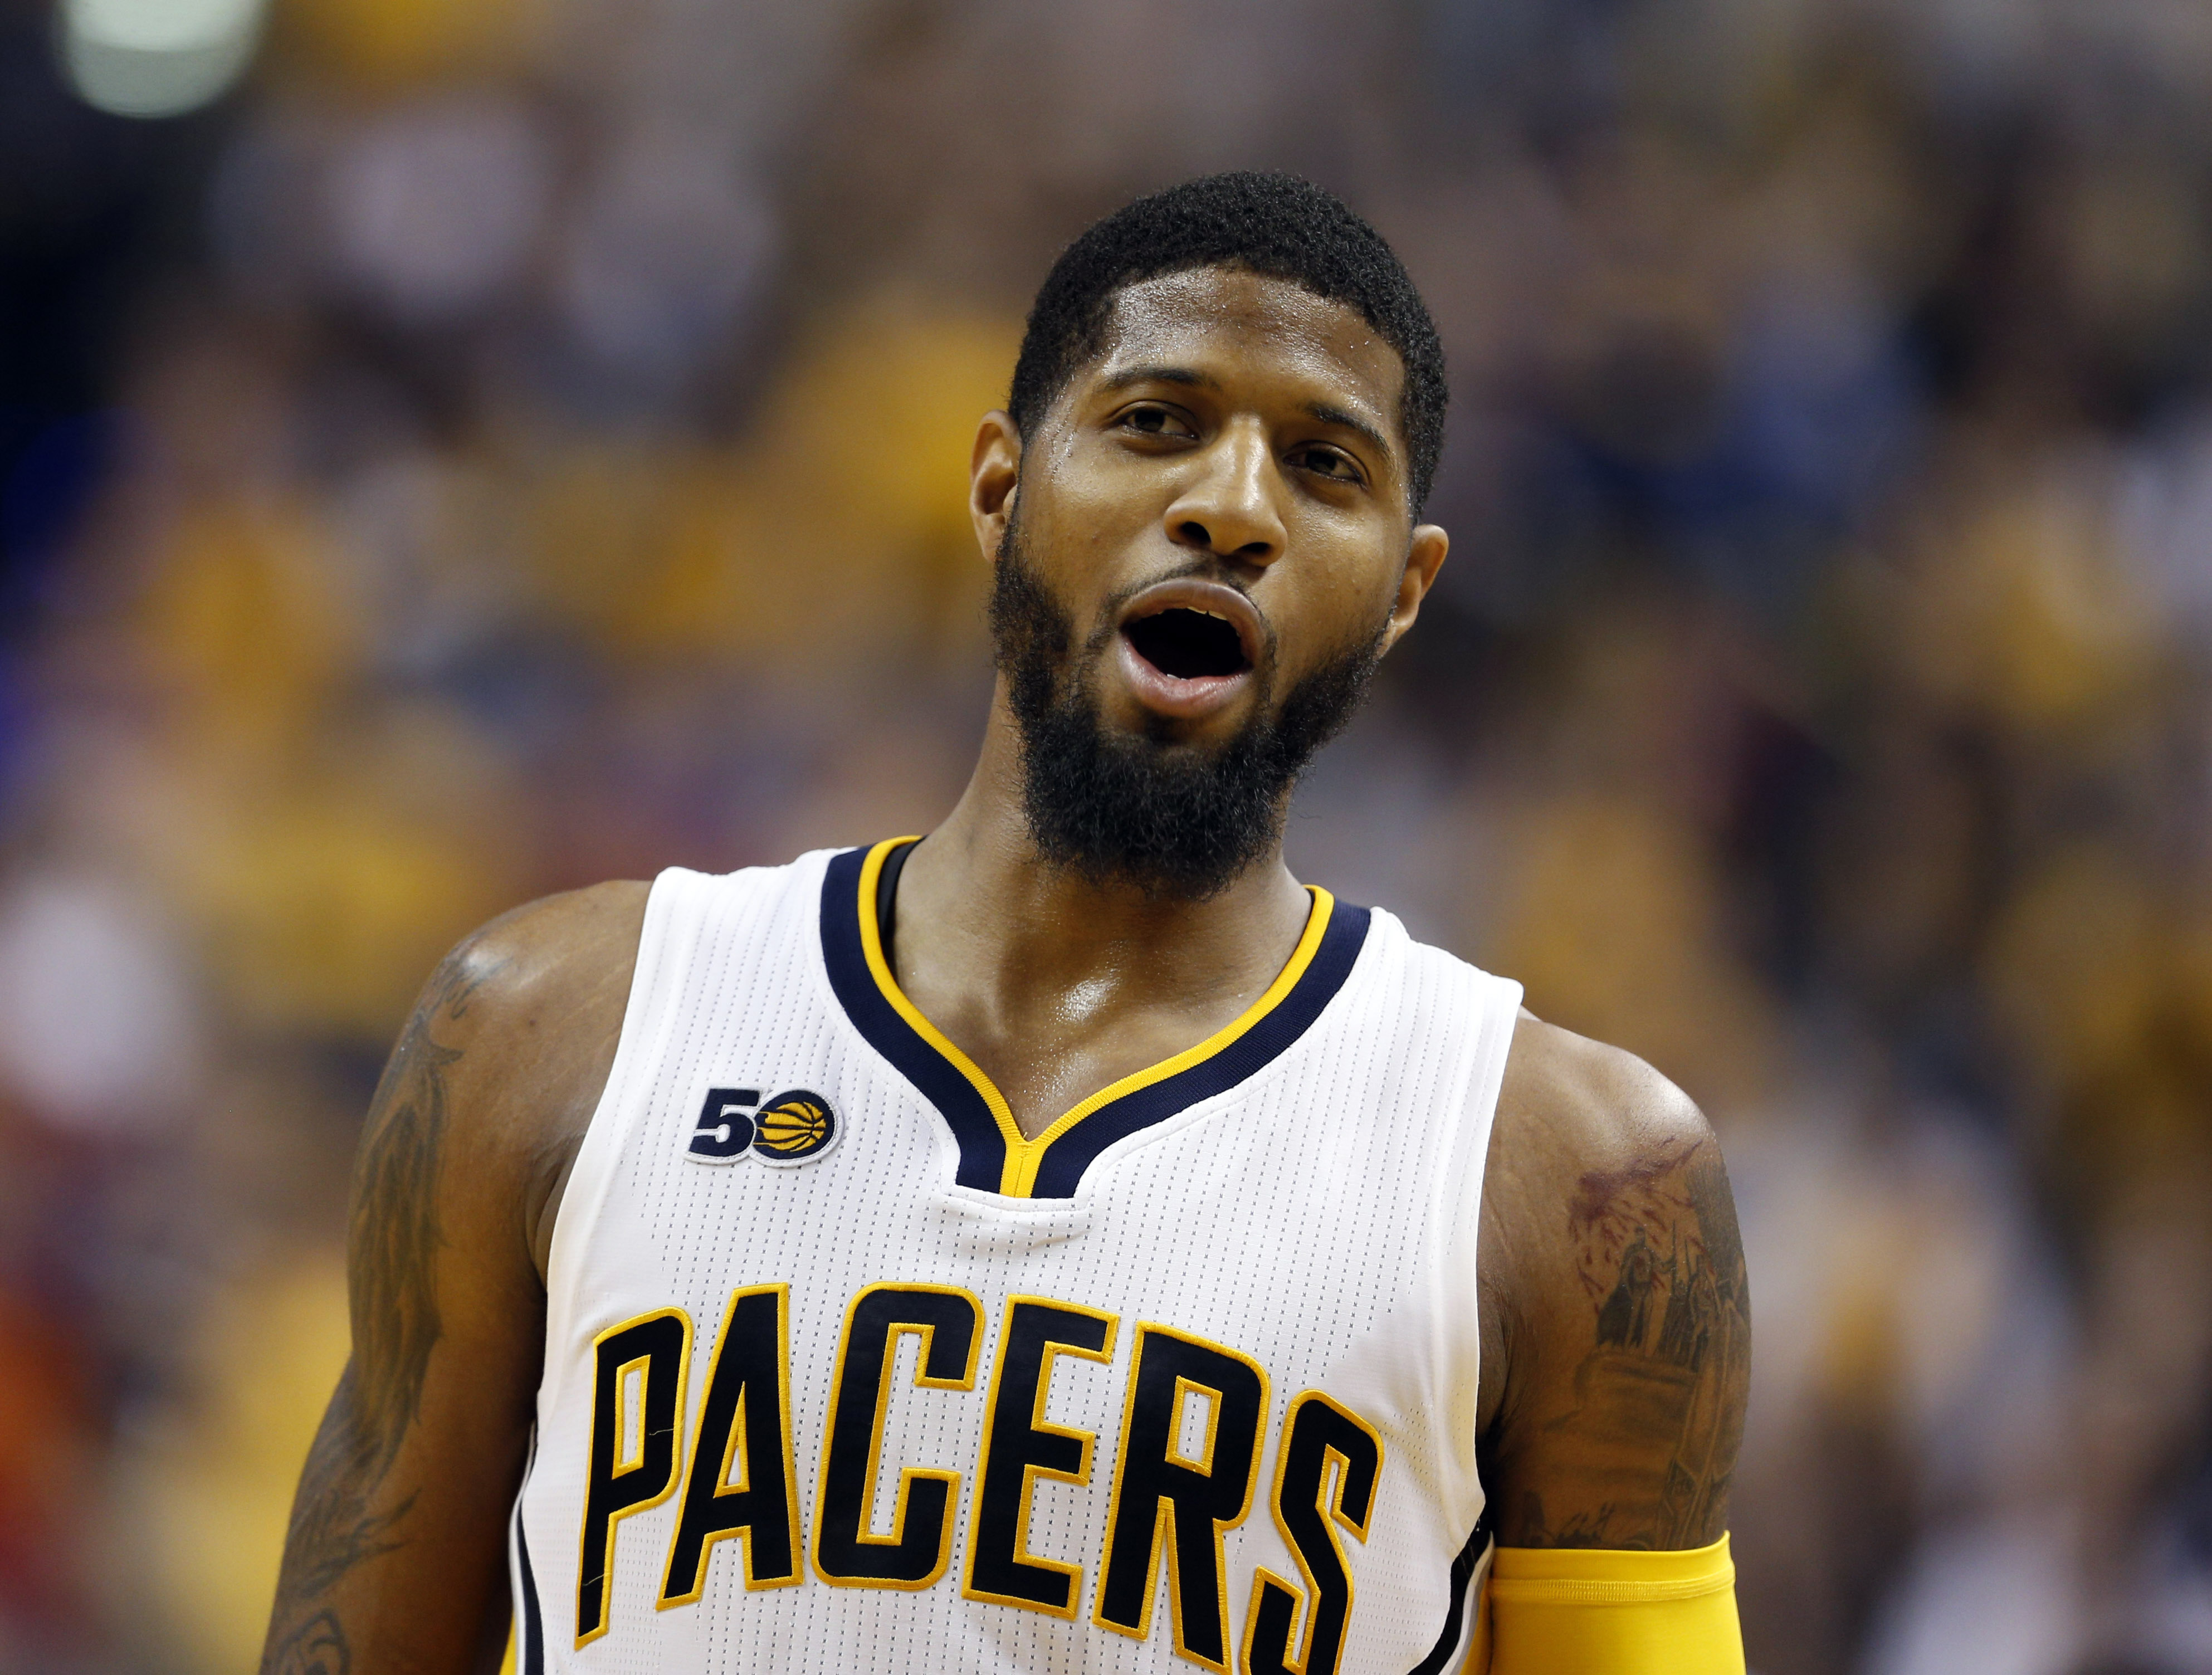 Apr 12, 2017; Indianapolis, IN, USA; Indiana Pacers forward Paul George (13) reacts to the Pacers defeating the Atlanta Hawks at Bankers Life Fieldhouse. Indiana defeats Atlanta 104-86. Mandatory Credit: Brian Spurlock-USA TODAY Sports